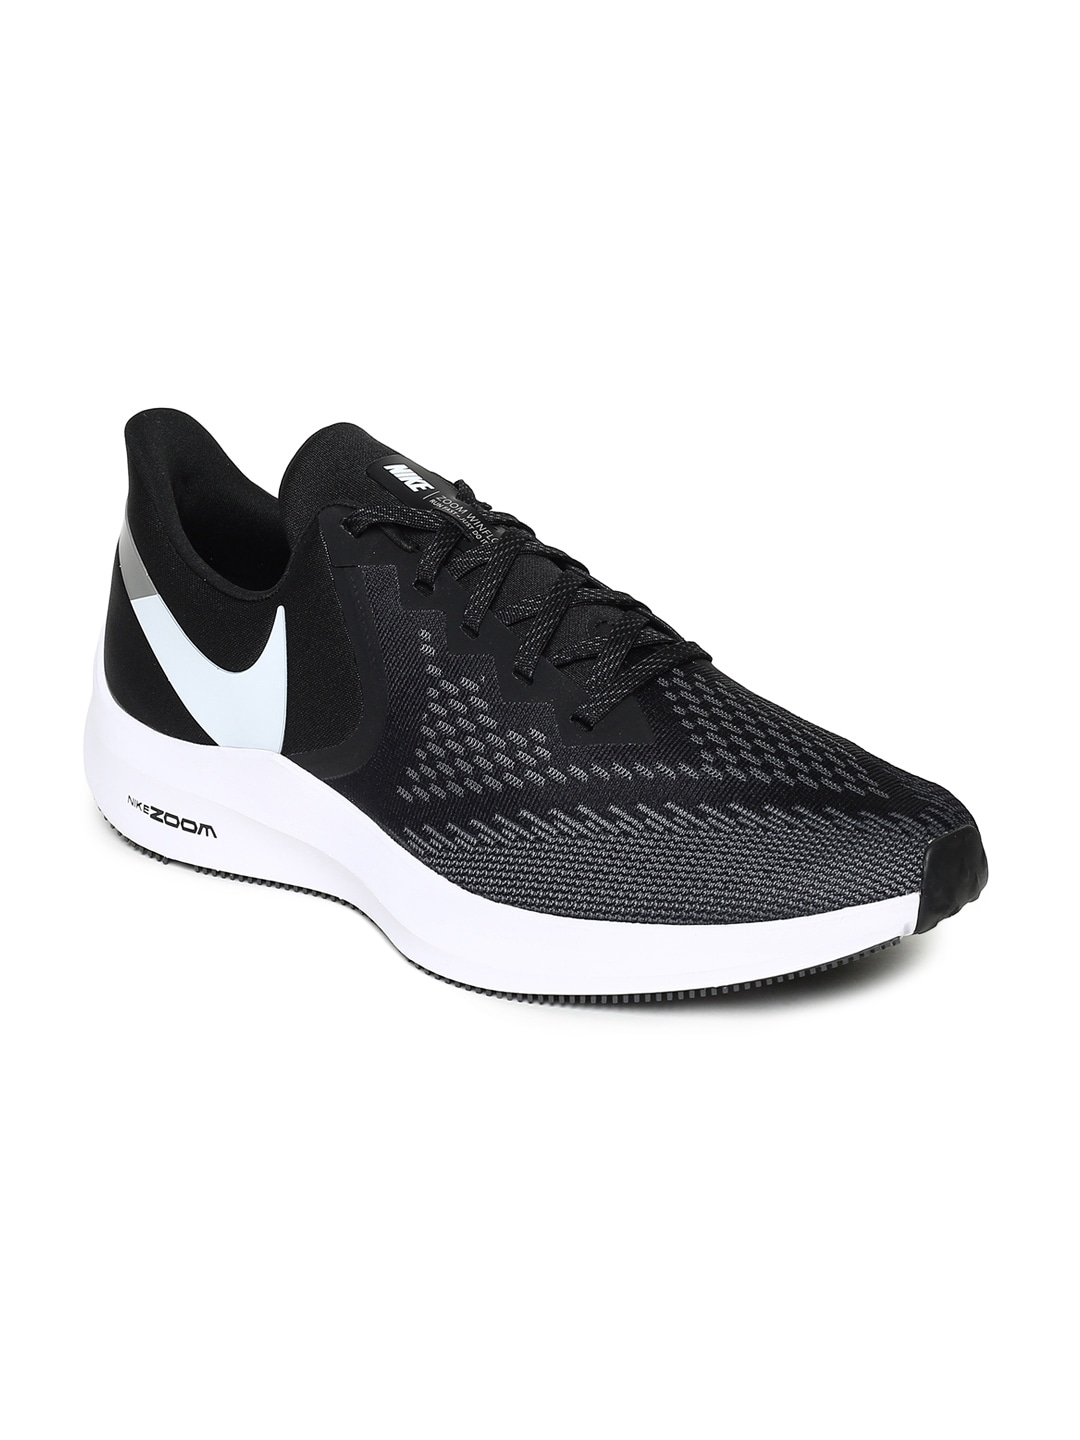 119fdefd668fb3 Nike - Shop for Nike Apparels Online in India